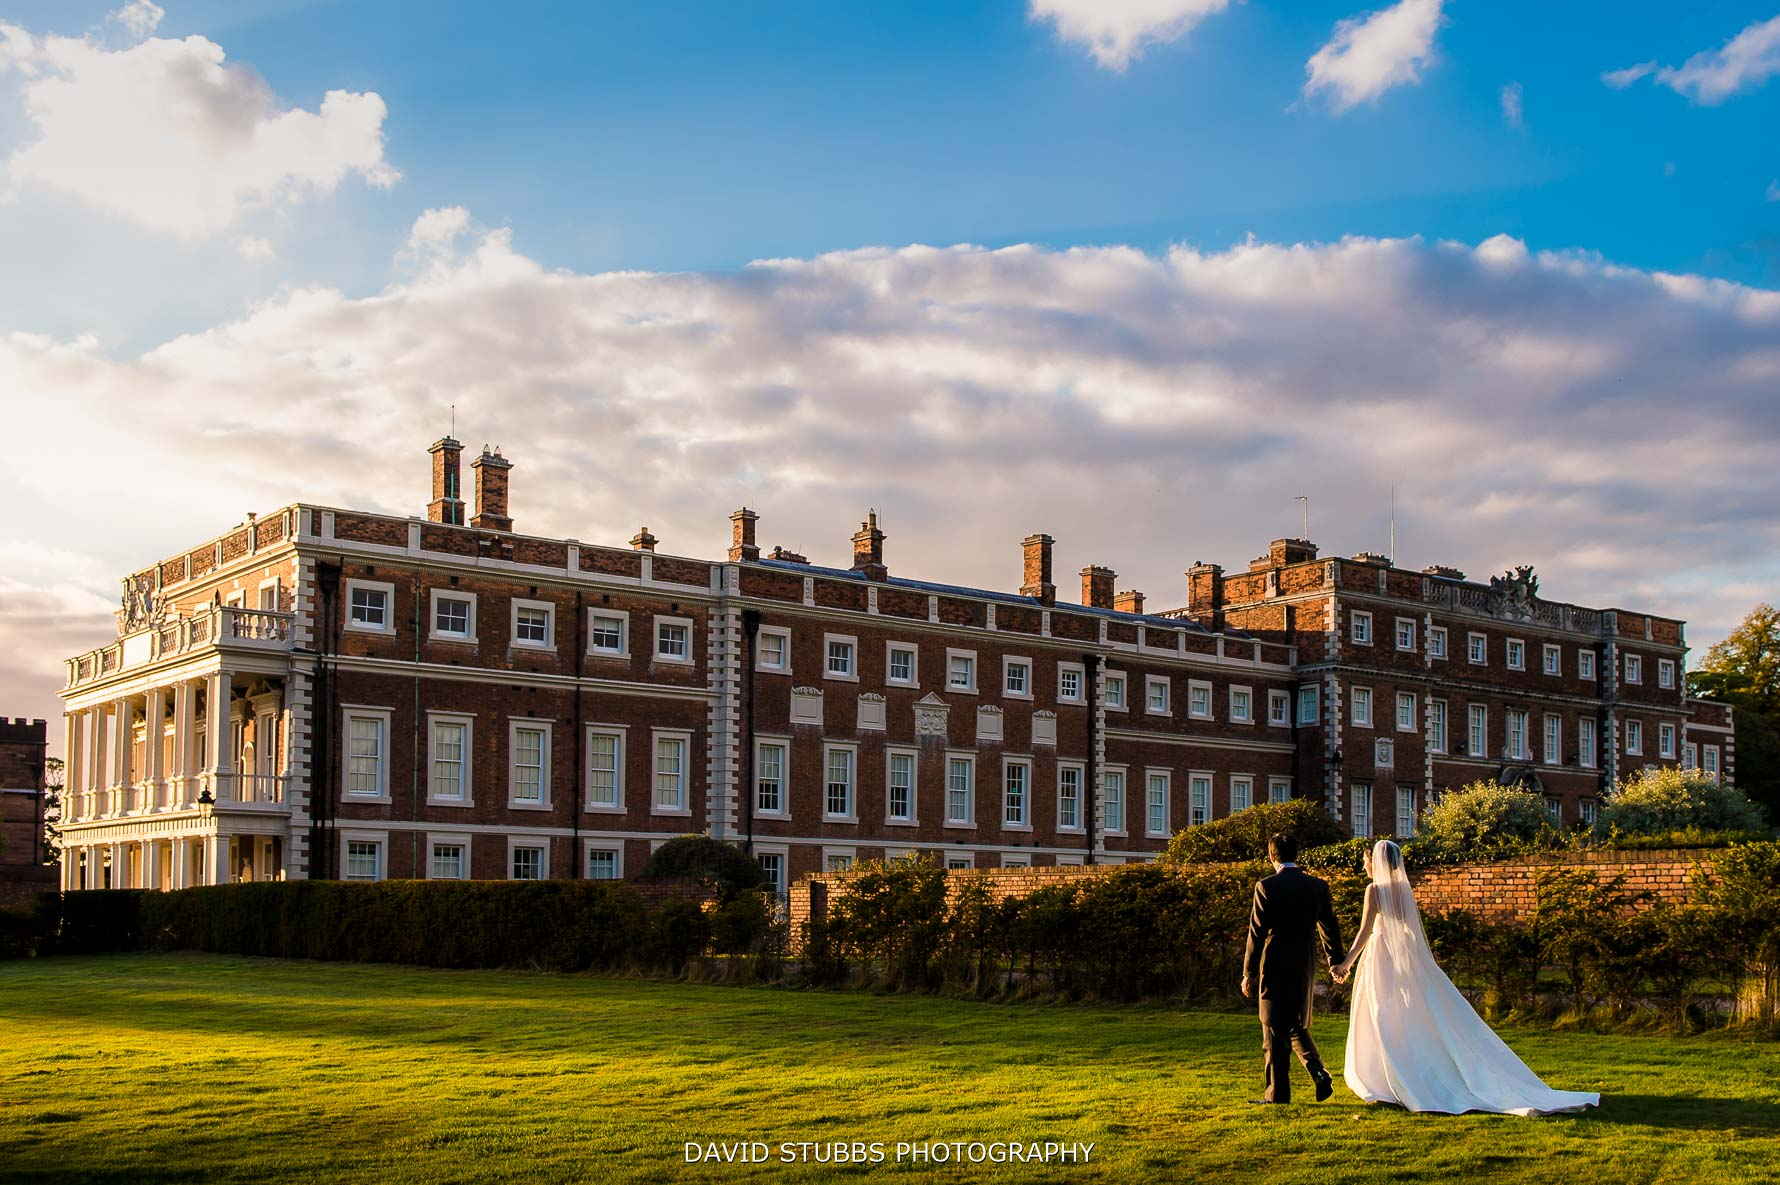 great light getting with the hall behind the newlyweds